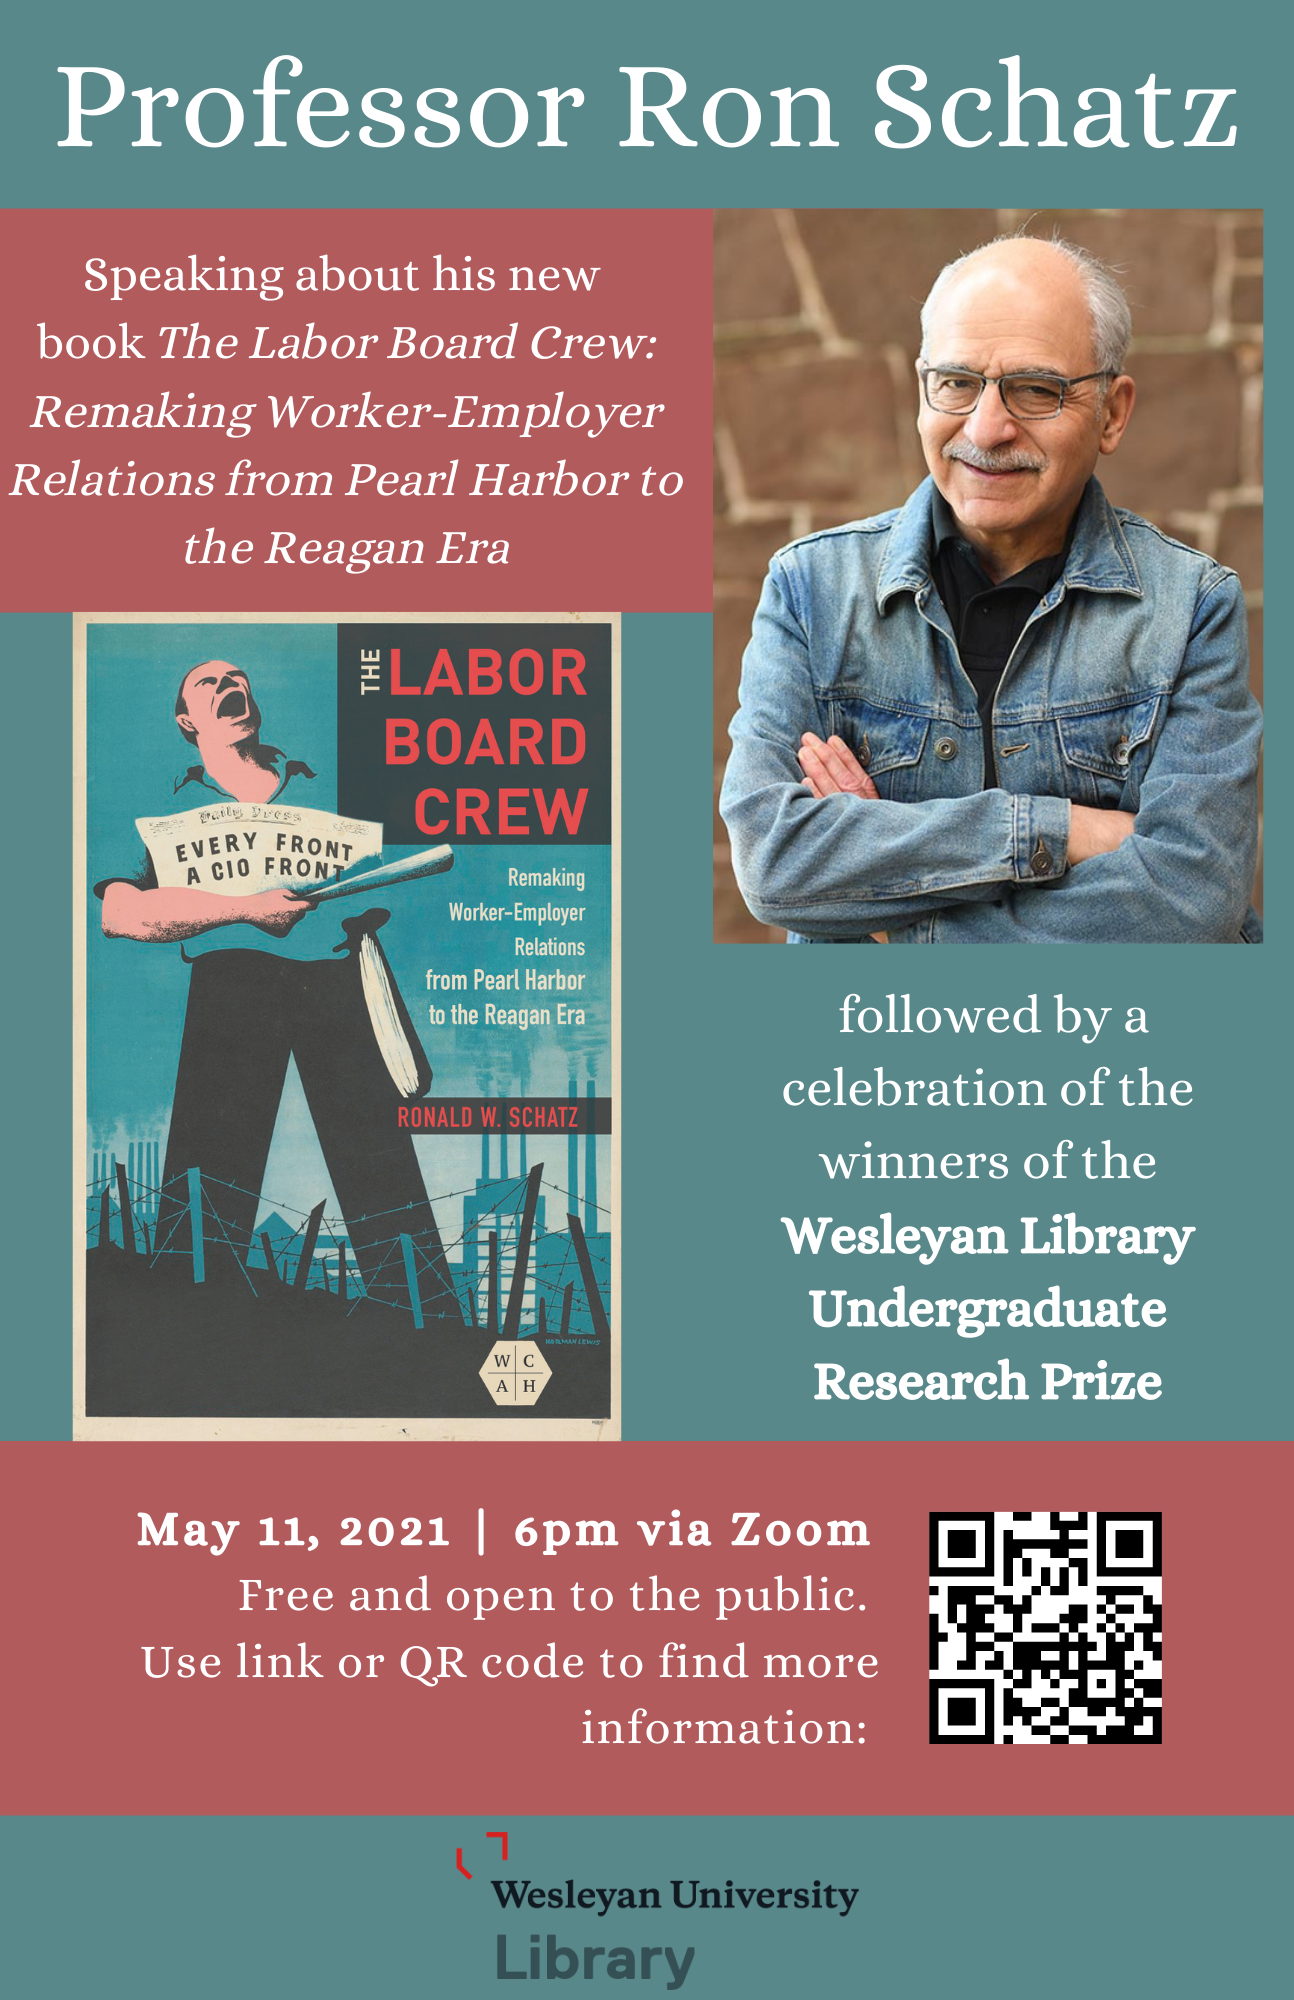 Book talk by Prof. Ron Schatz and celebration of Wesleyan Library Research Prize Winners